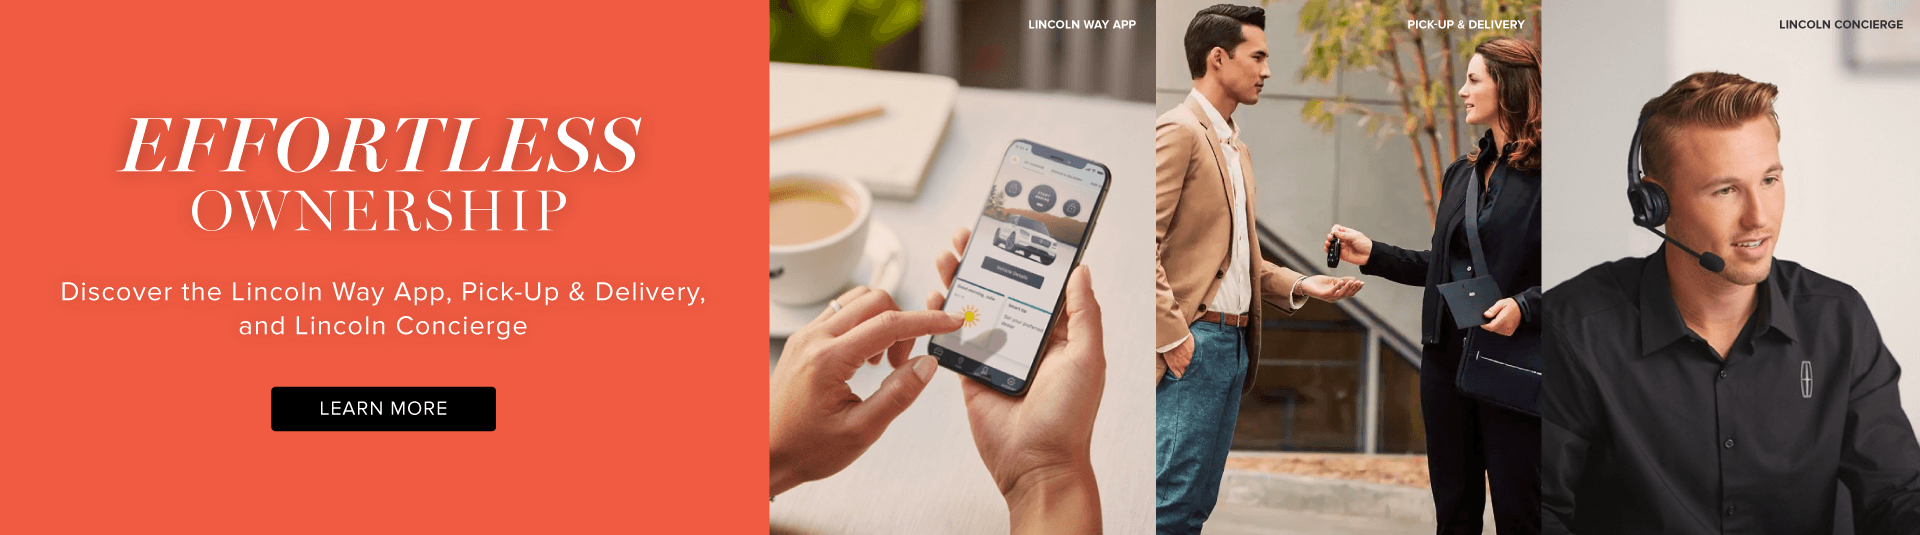 Effortless-Ownership-LincolnWayApp-Pick-Up&Delivery-LincolnConcierge